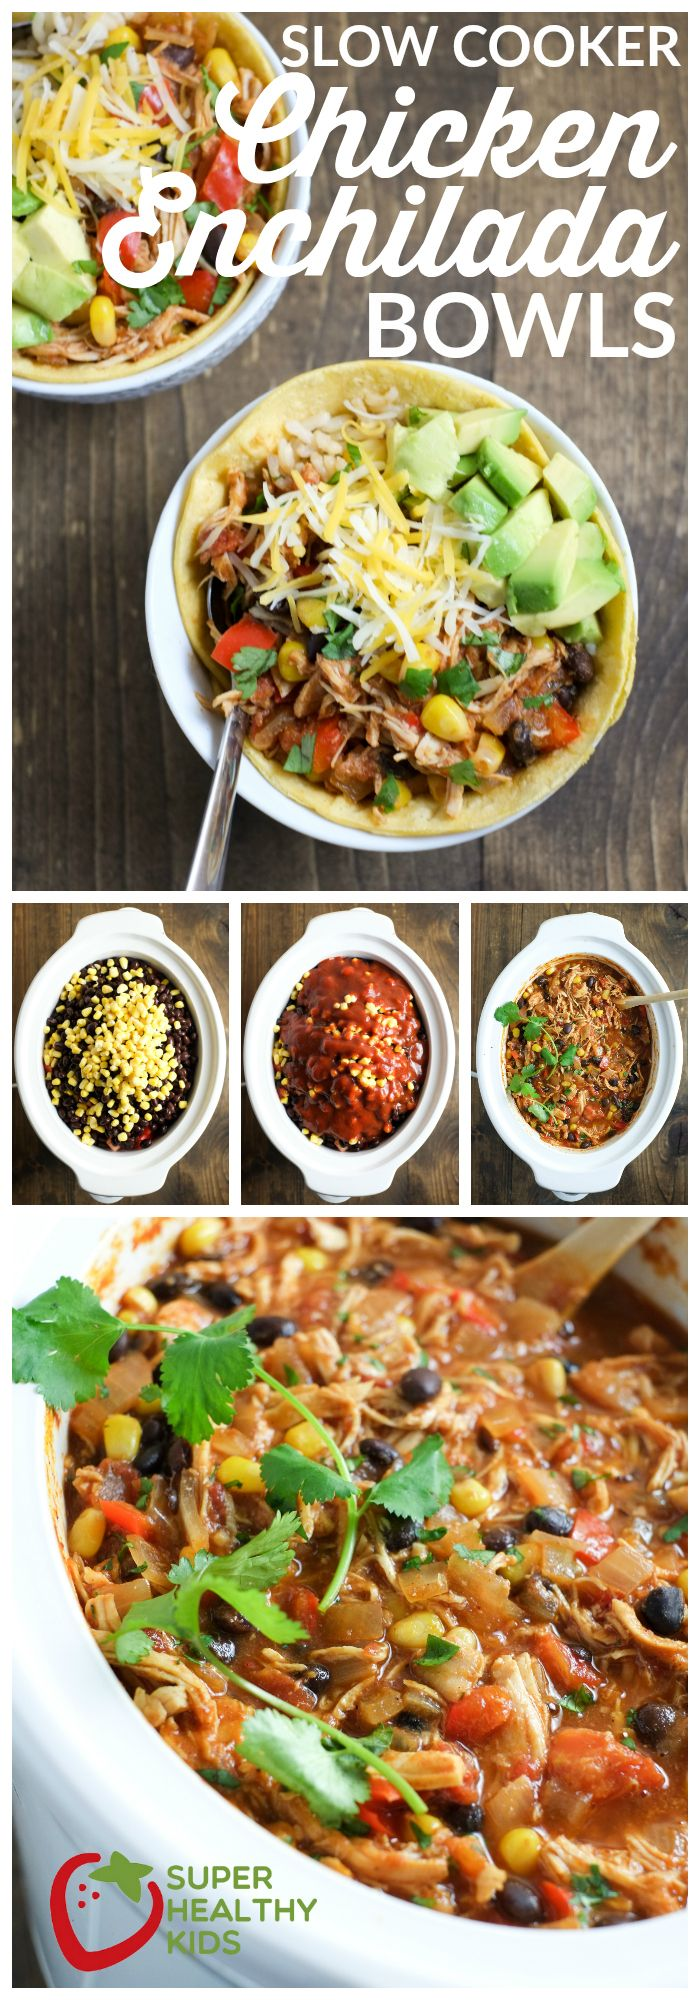 2656 best healthy recipes images on pinterest eat healthy healthy food slow cooker chicken enchilada bowls super healthy kids food and drink http forumfinder Images